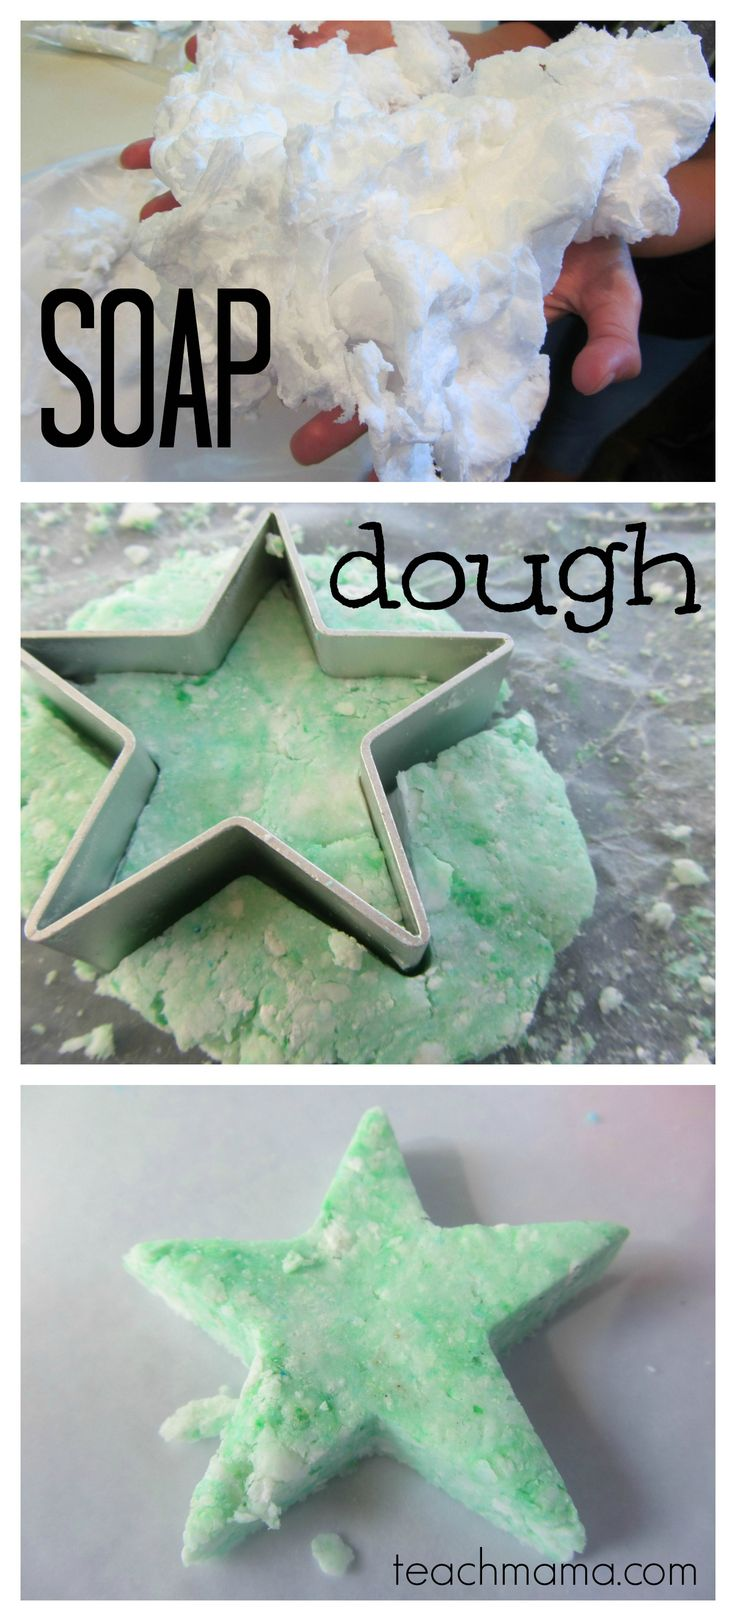 soap dough, soap molds, crazy cool fun with one thing: soap #summerfun #weteach